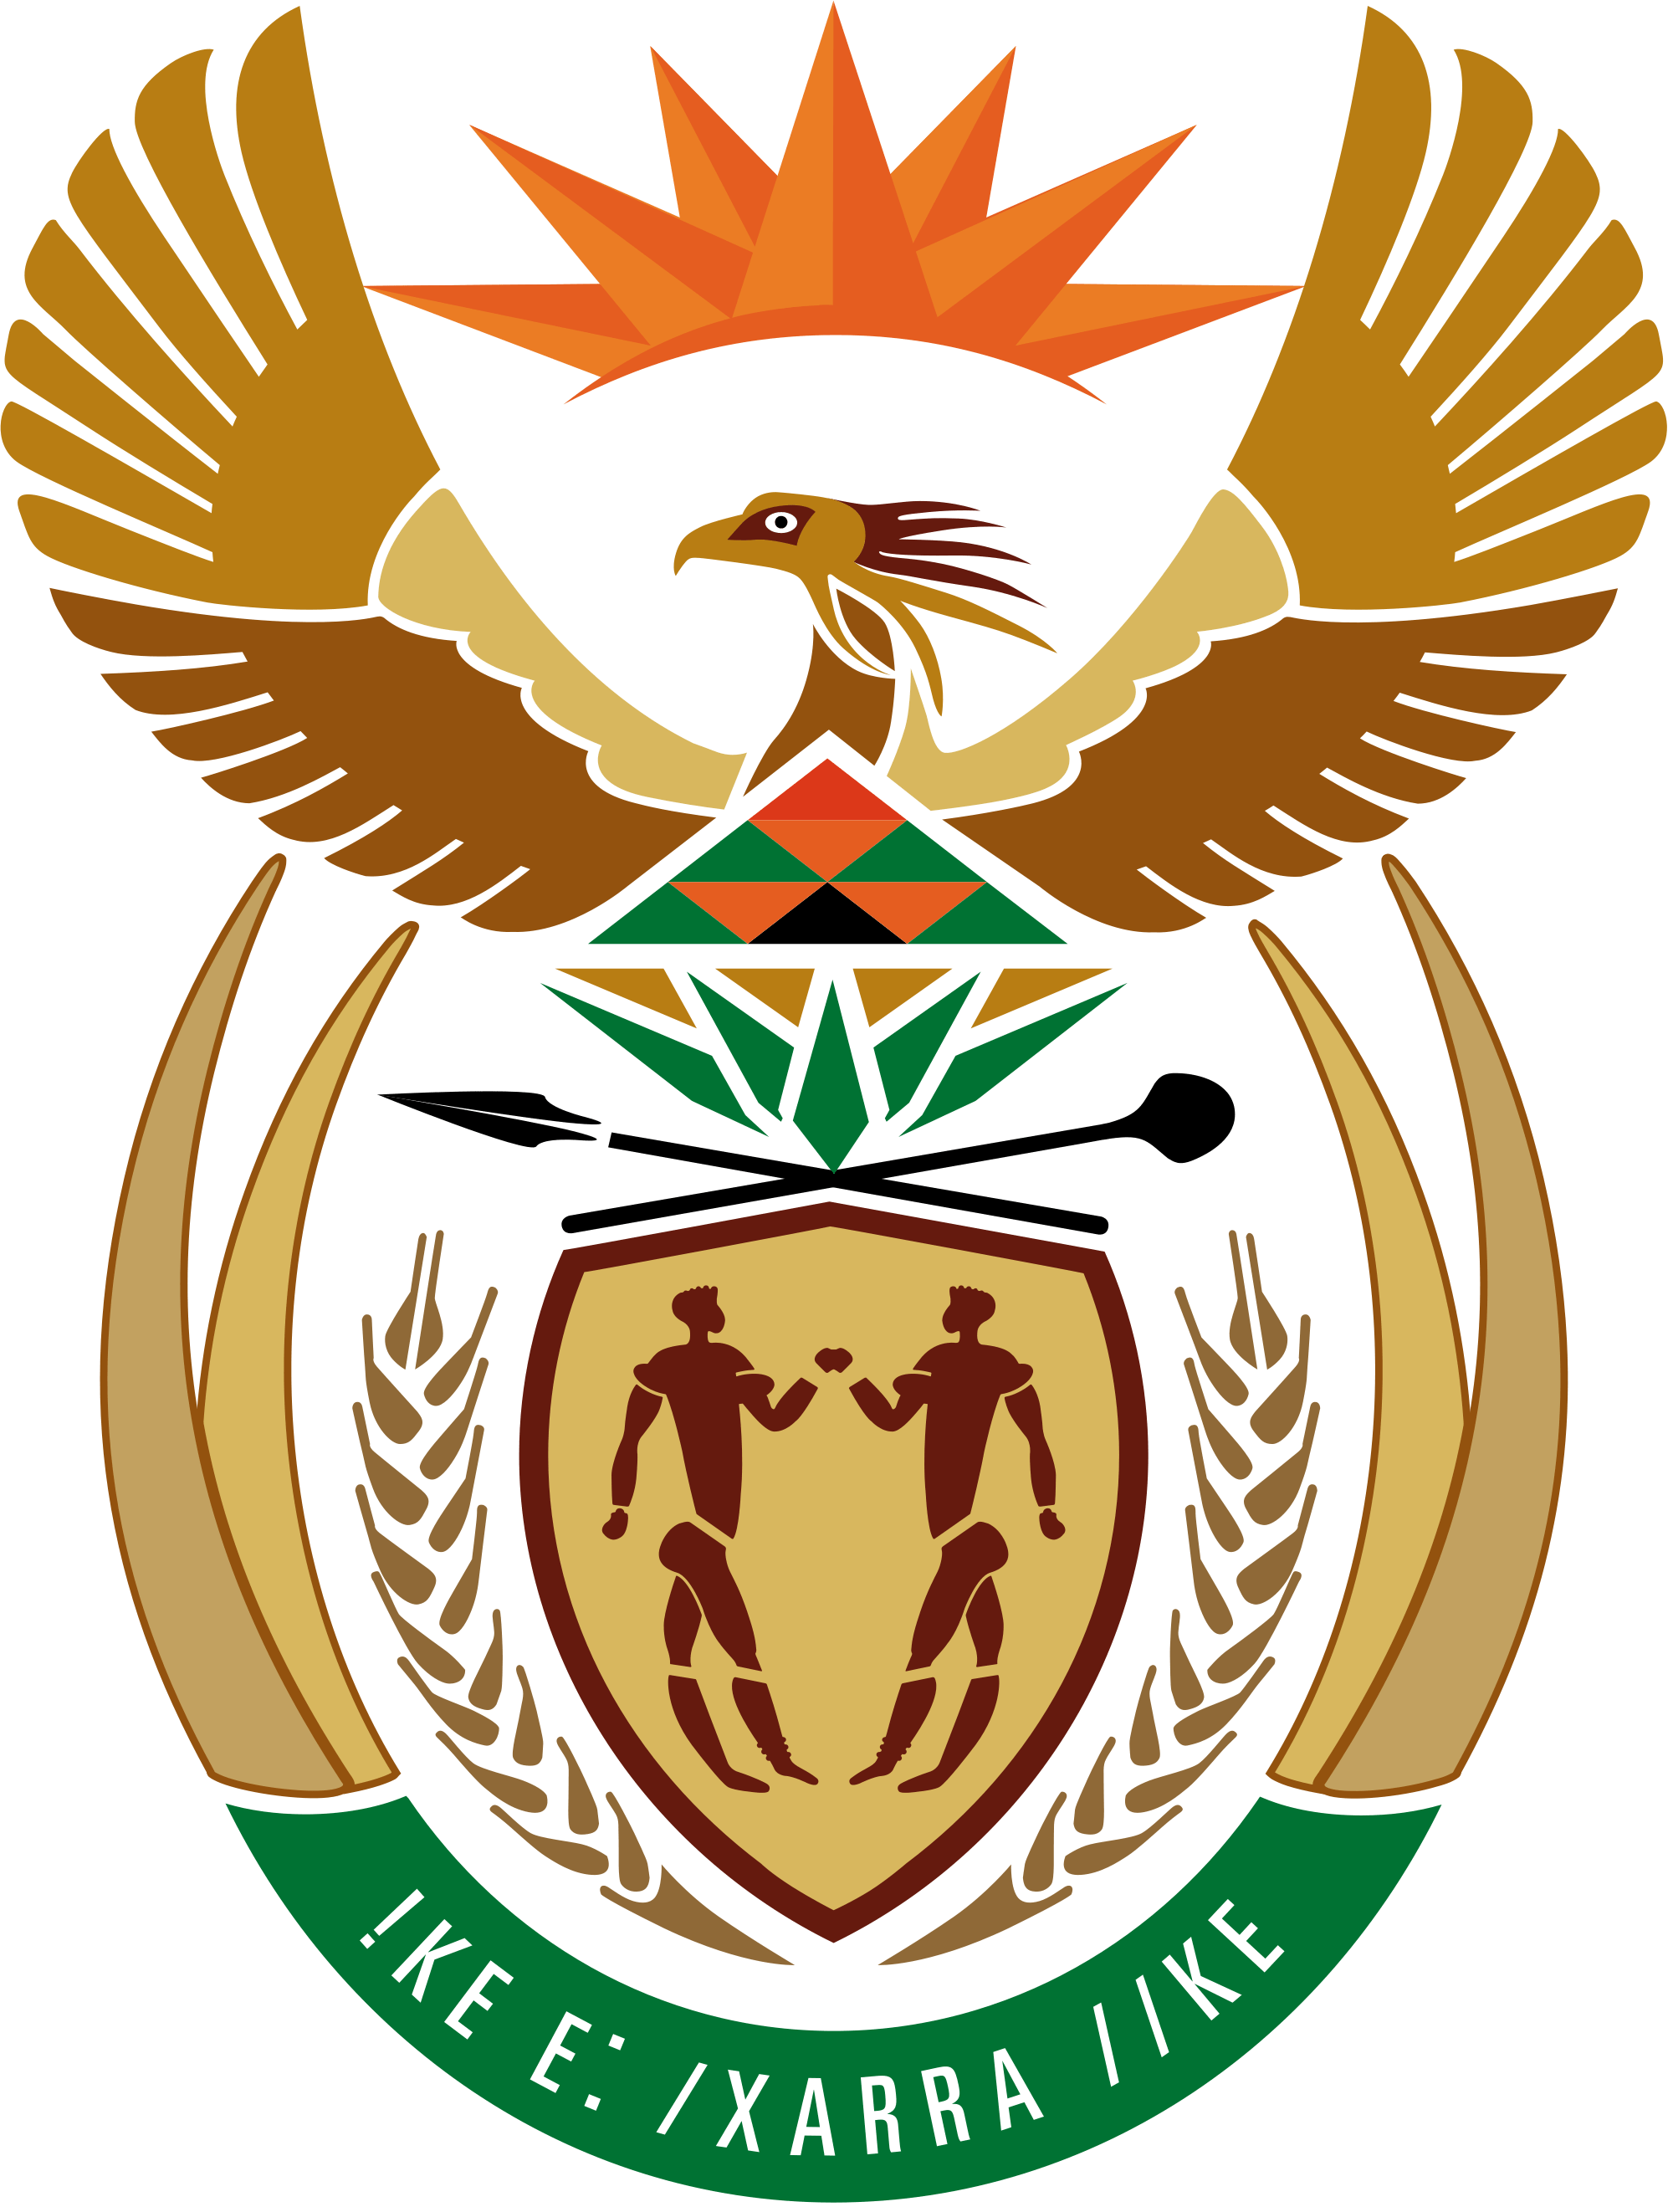 DEPARTMENT-OF-MINERALS-AND-ENERGY-REPUBLIC-OF-SOUTH-AFRICA